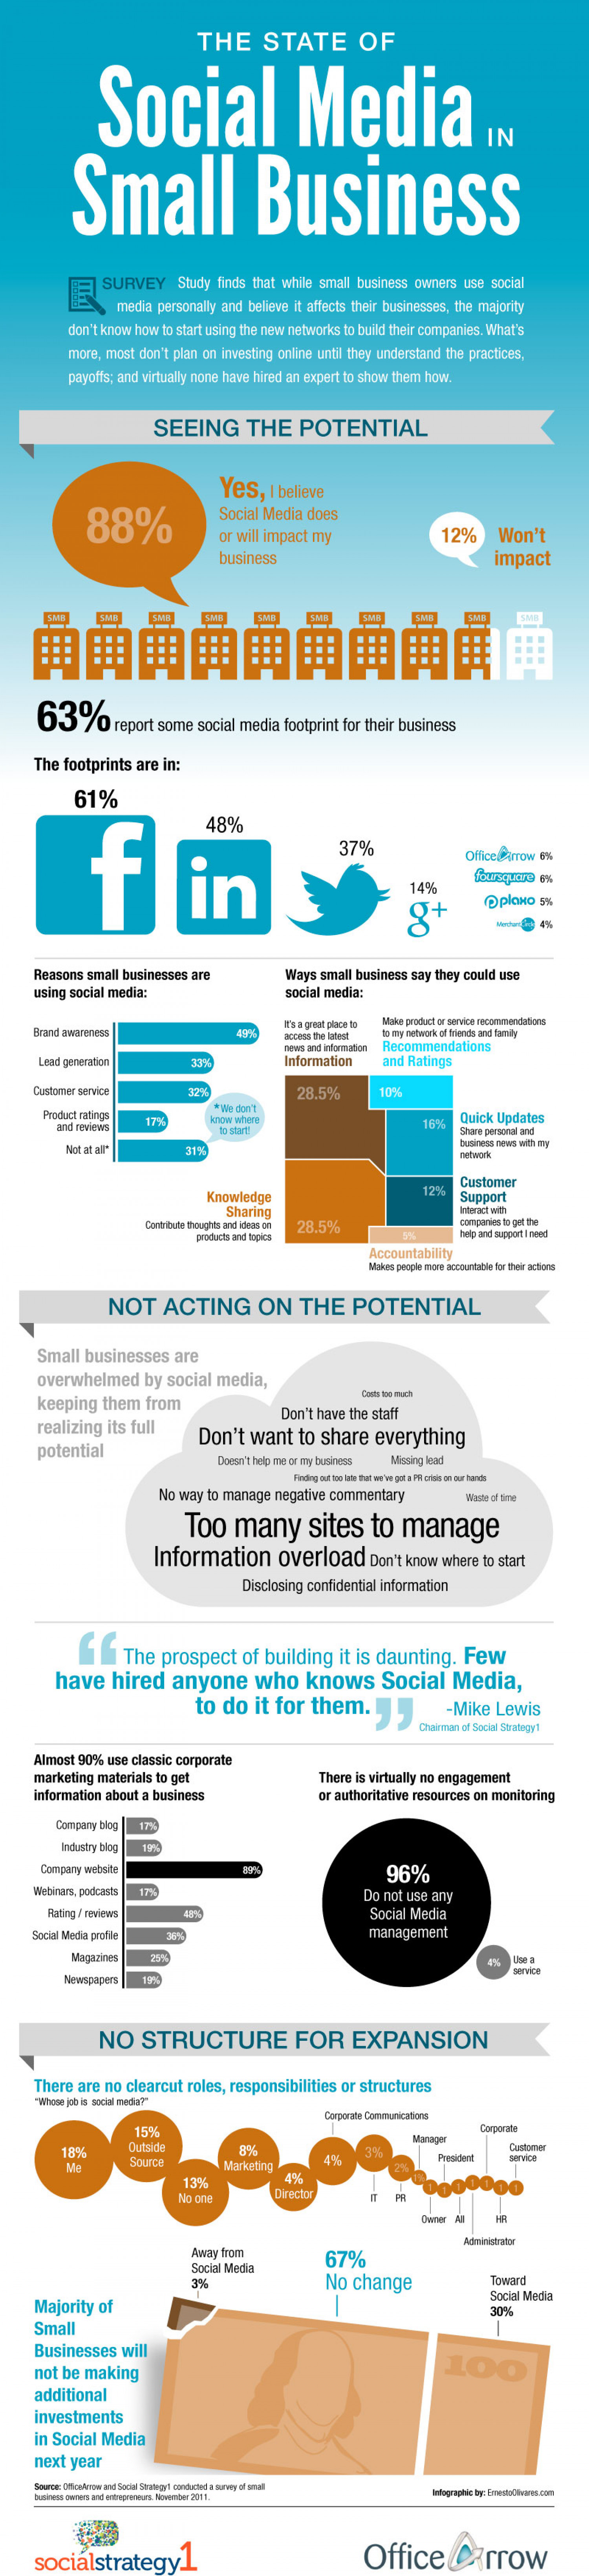 The State of Social Media in Small Business Infographic